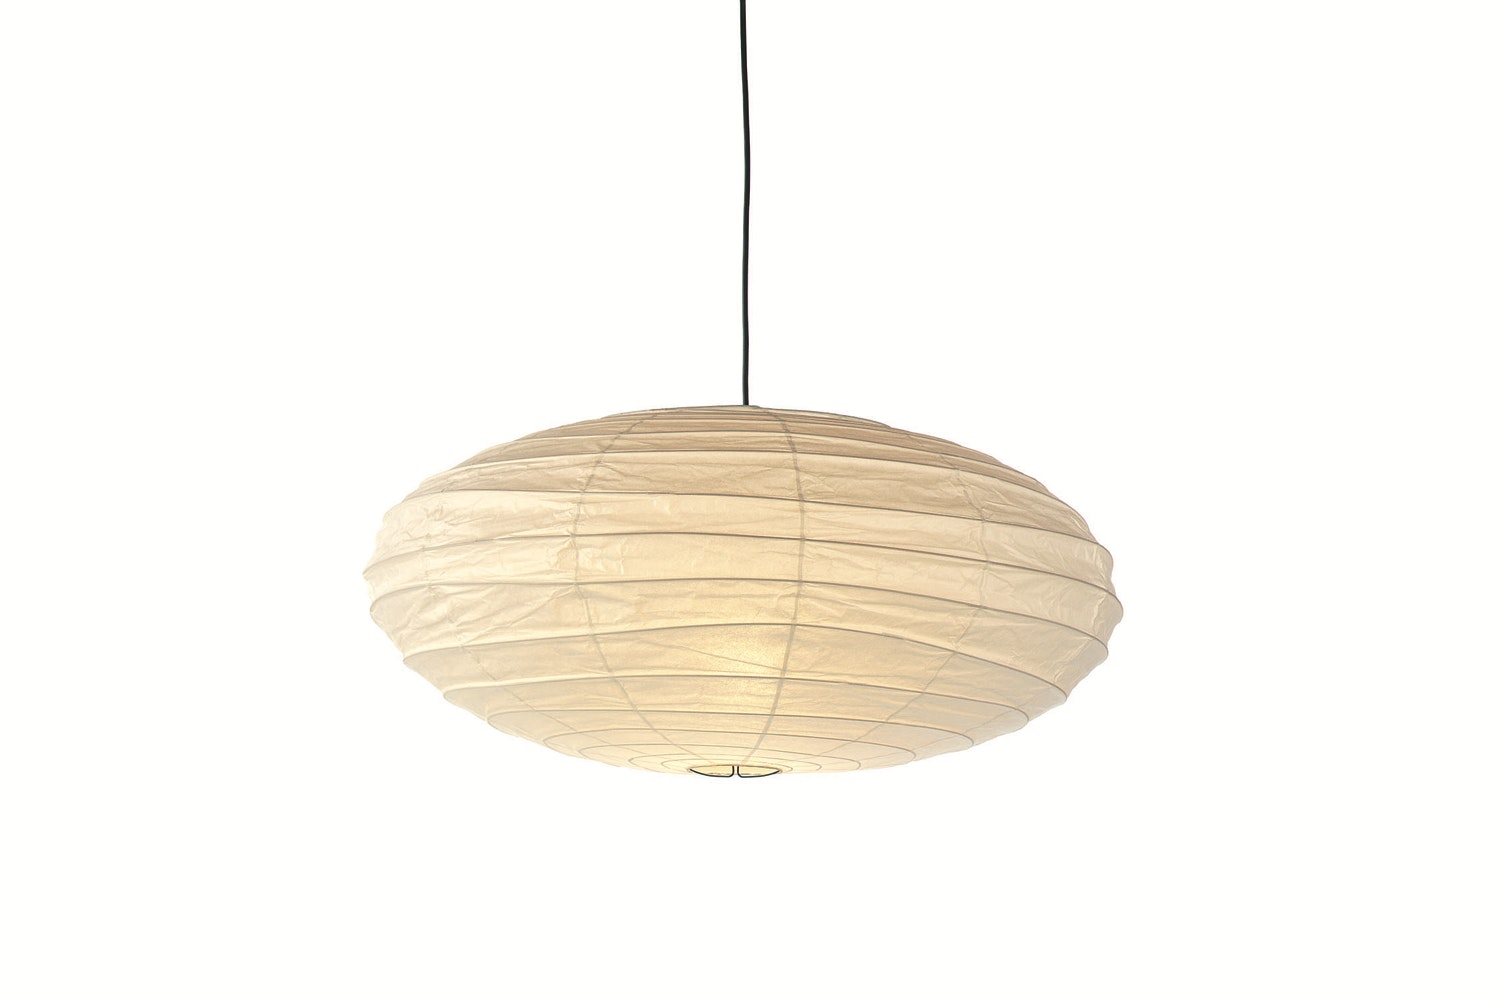 Akari 70EN Suspension Lamp by Isamu Noguchi for Vitra